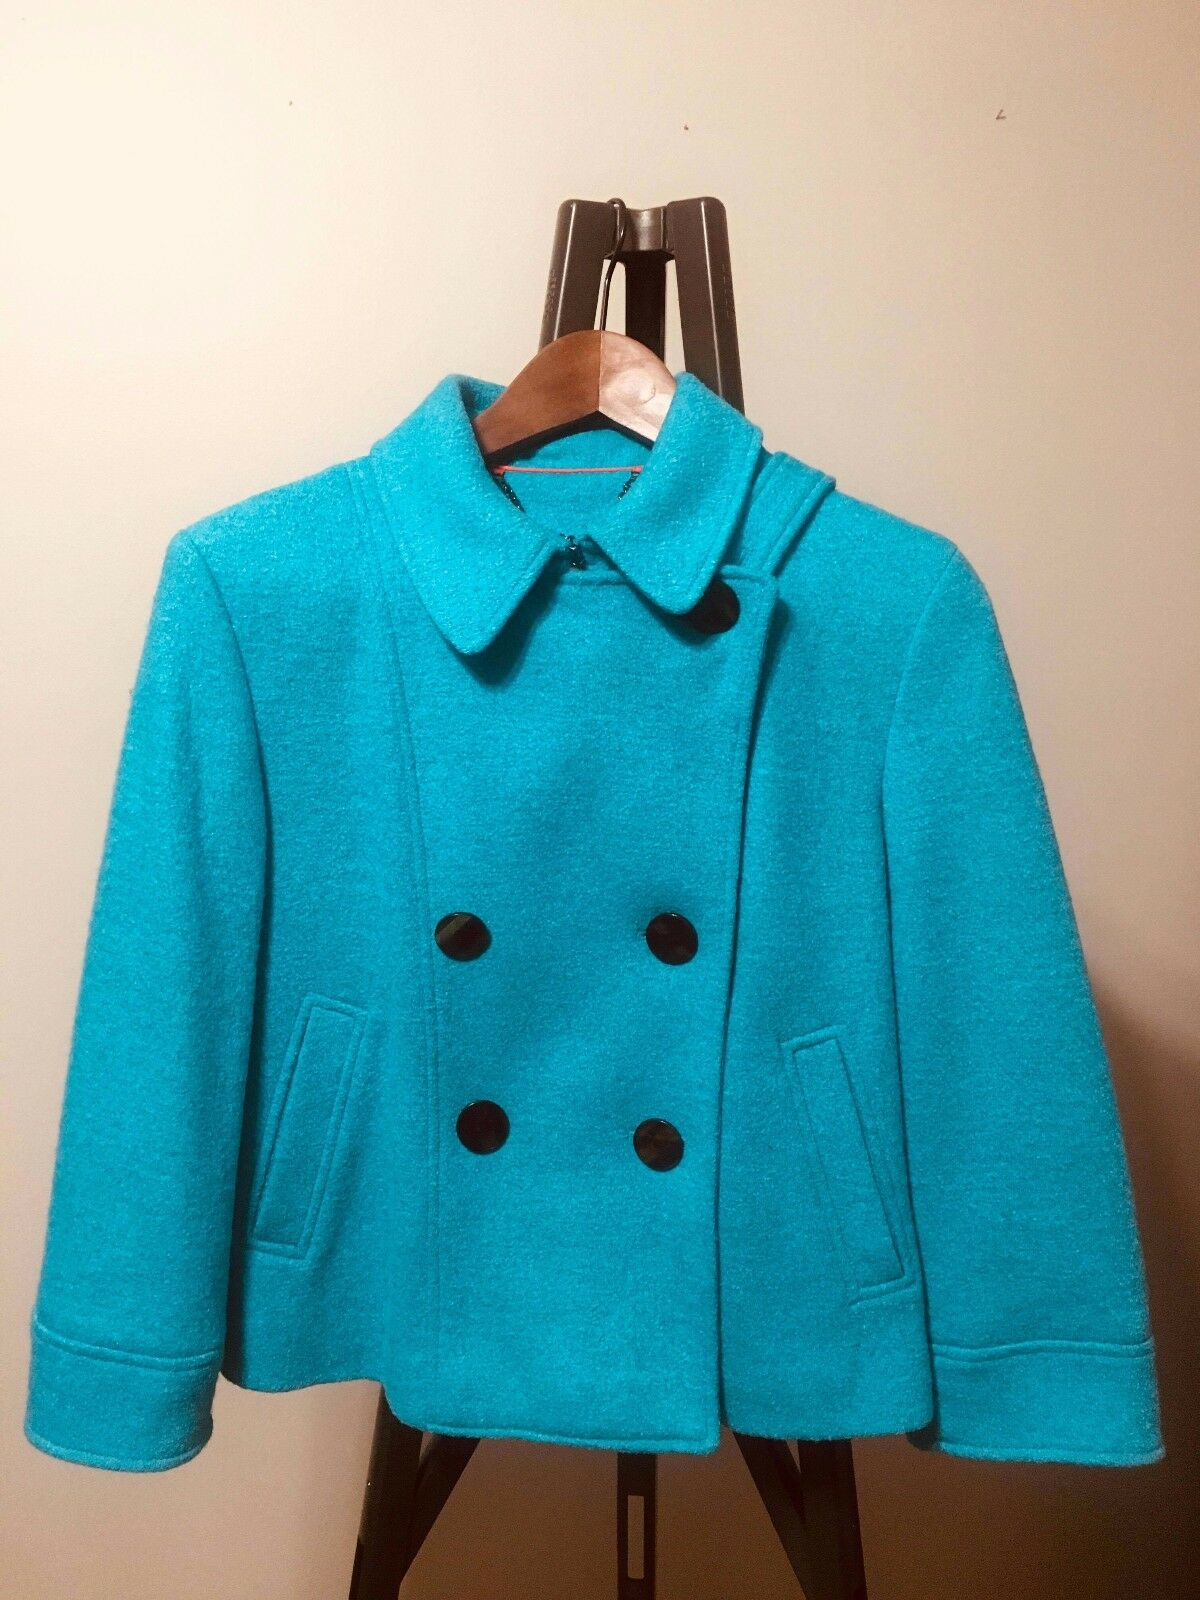 Turquoise Doublebreasted Military Style Short Coat